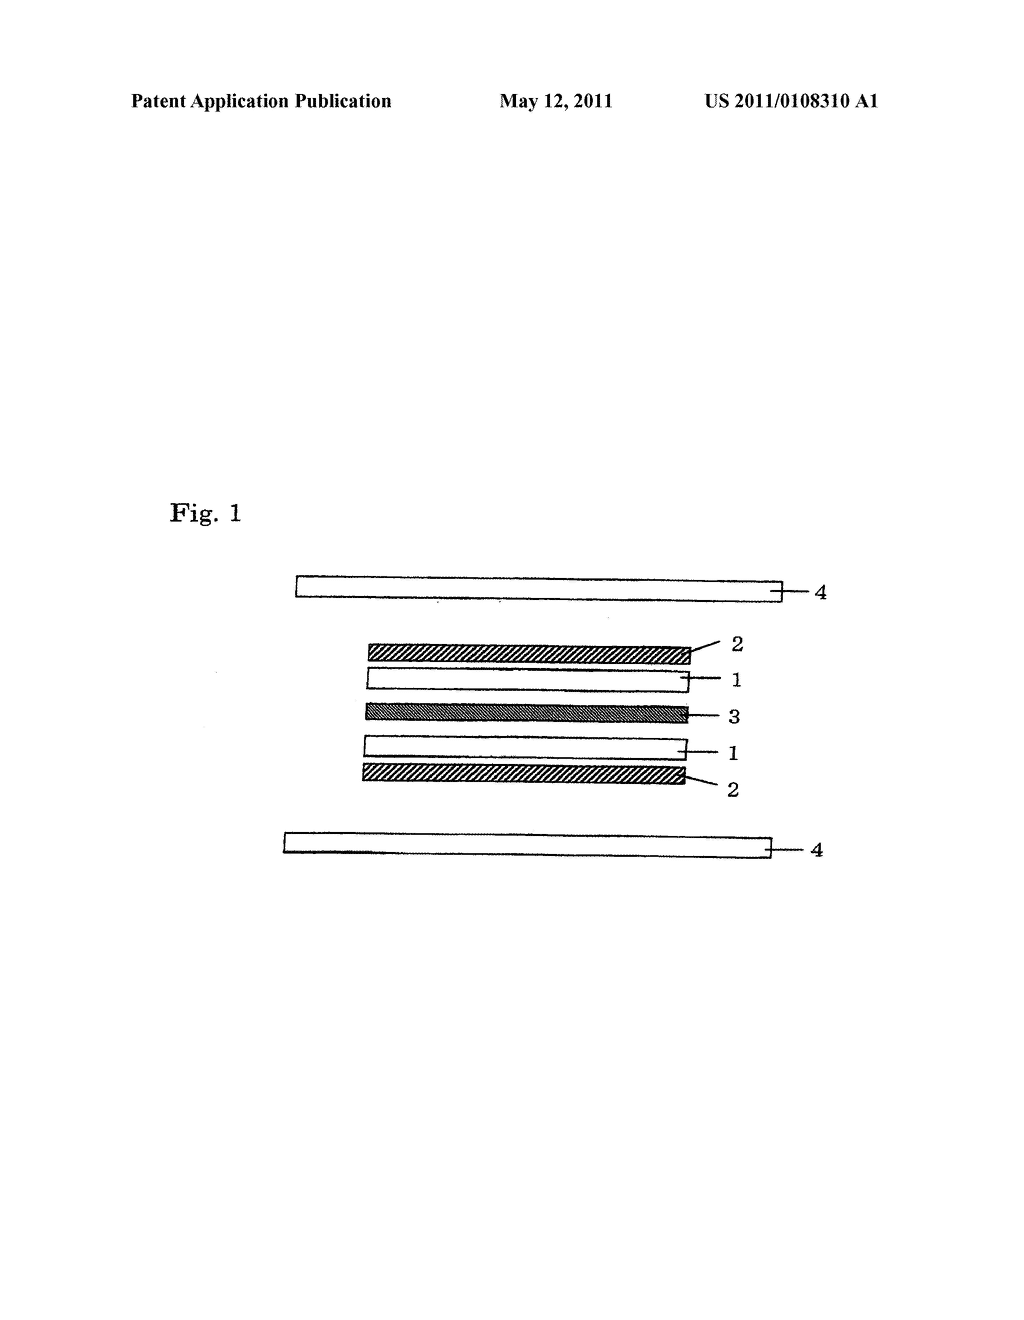 Two Layered Laminate Having Metal Foil Cladded On Its One Surface Wiring Diagram Method For Production Of The Single Sided Printed Board And